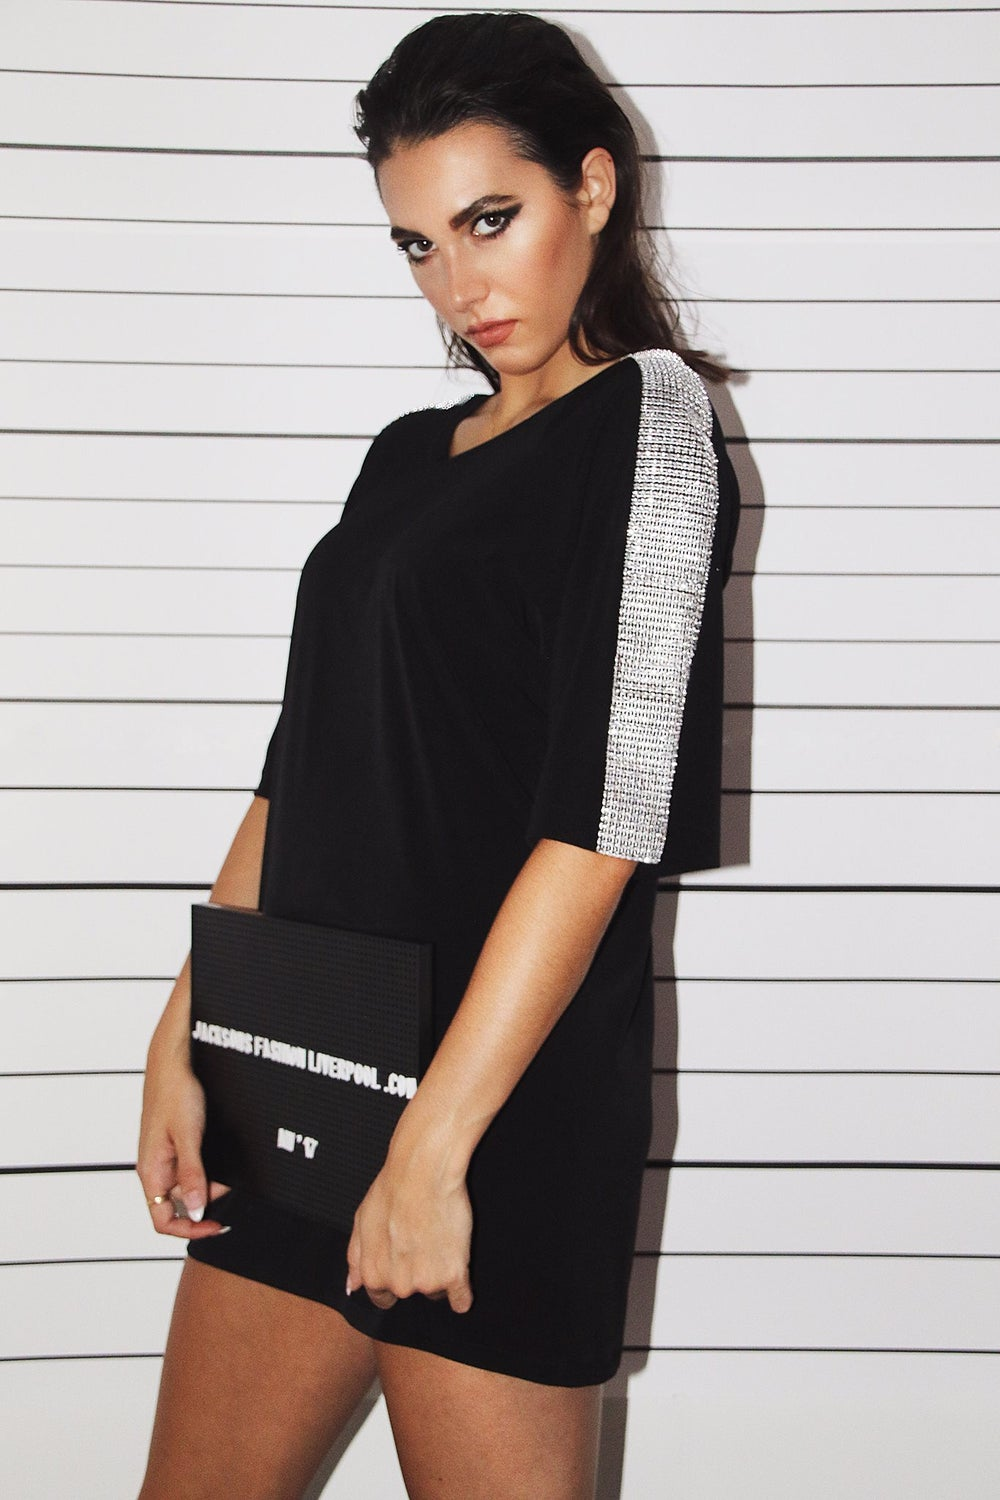 Image of Crystal Arm Detail Tshirt Dress - Black / White